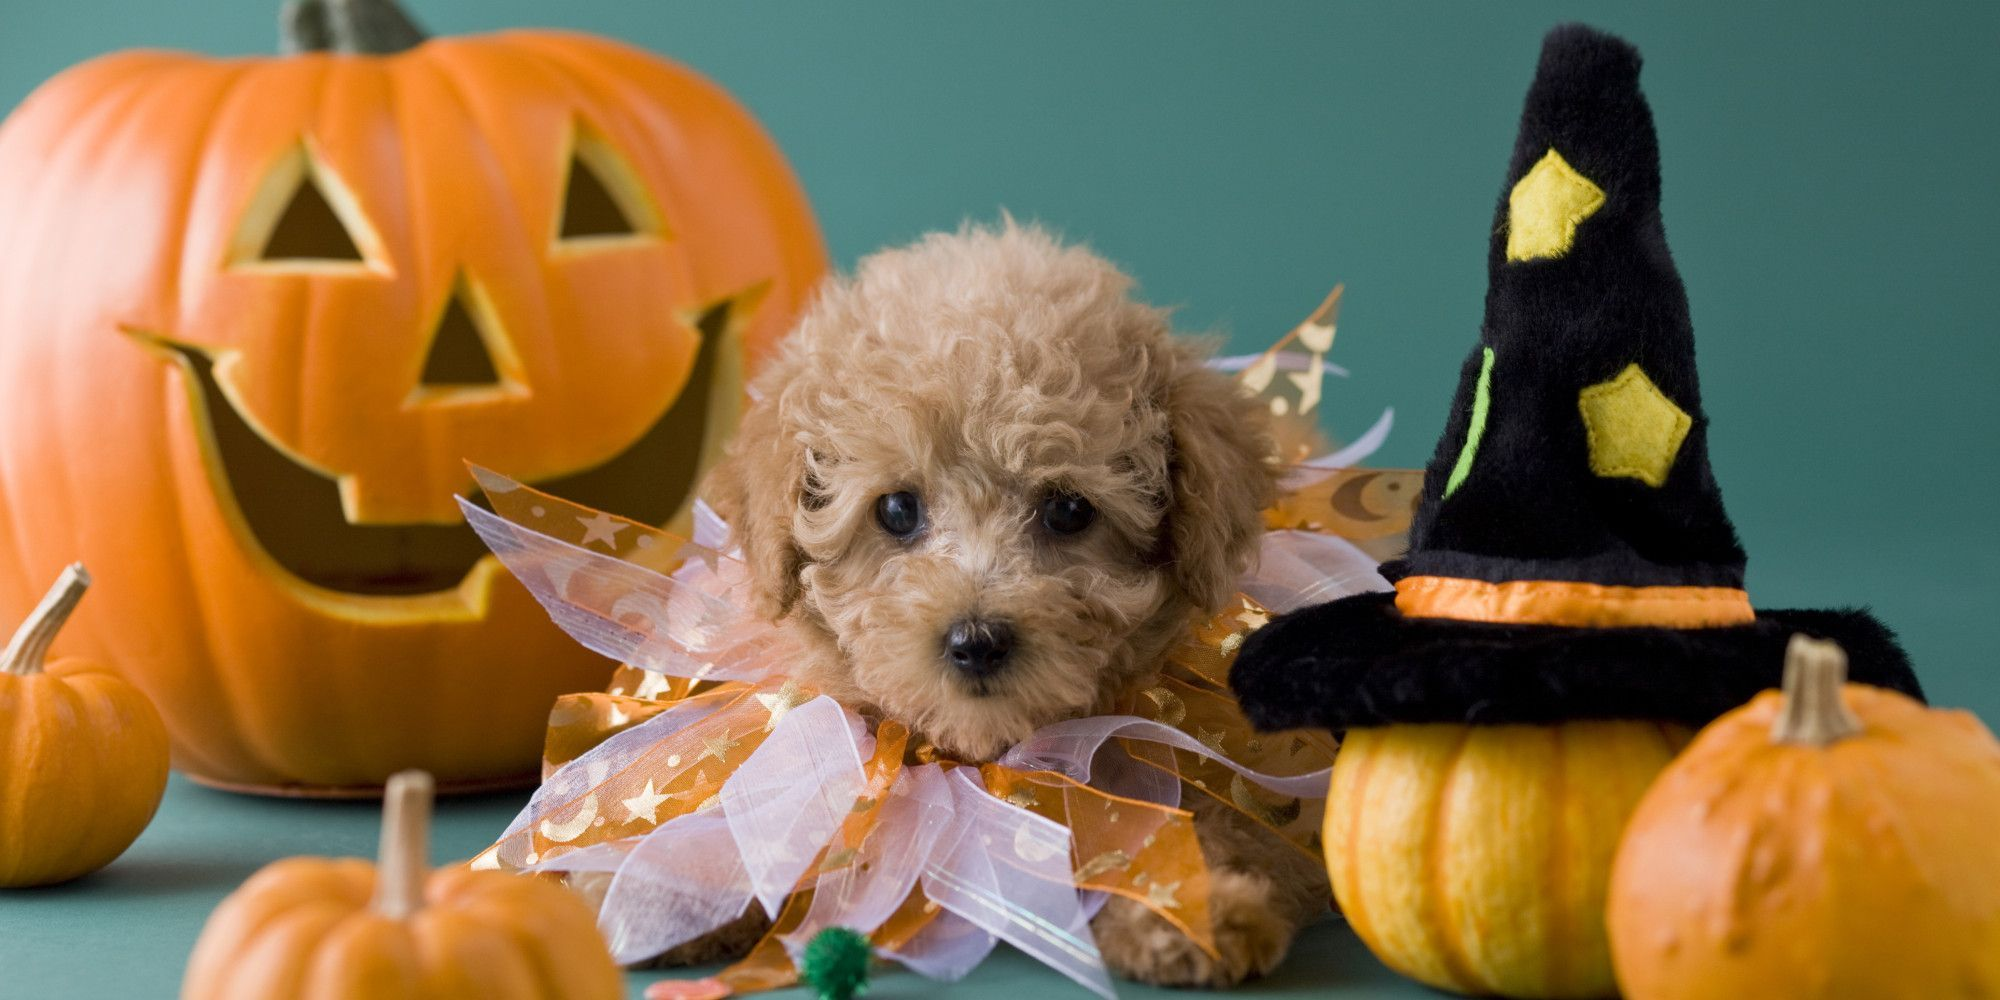 2000x1000 45+ Cute Puppy Halloween Wallpapers - Download at WallpaperBro